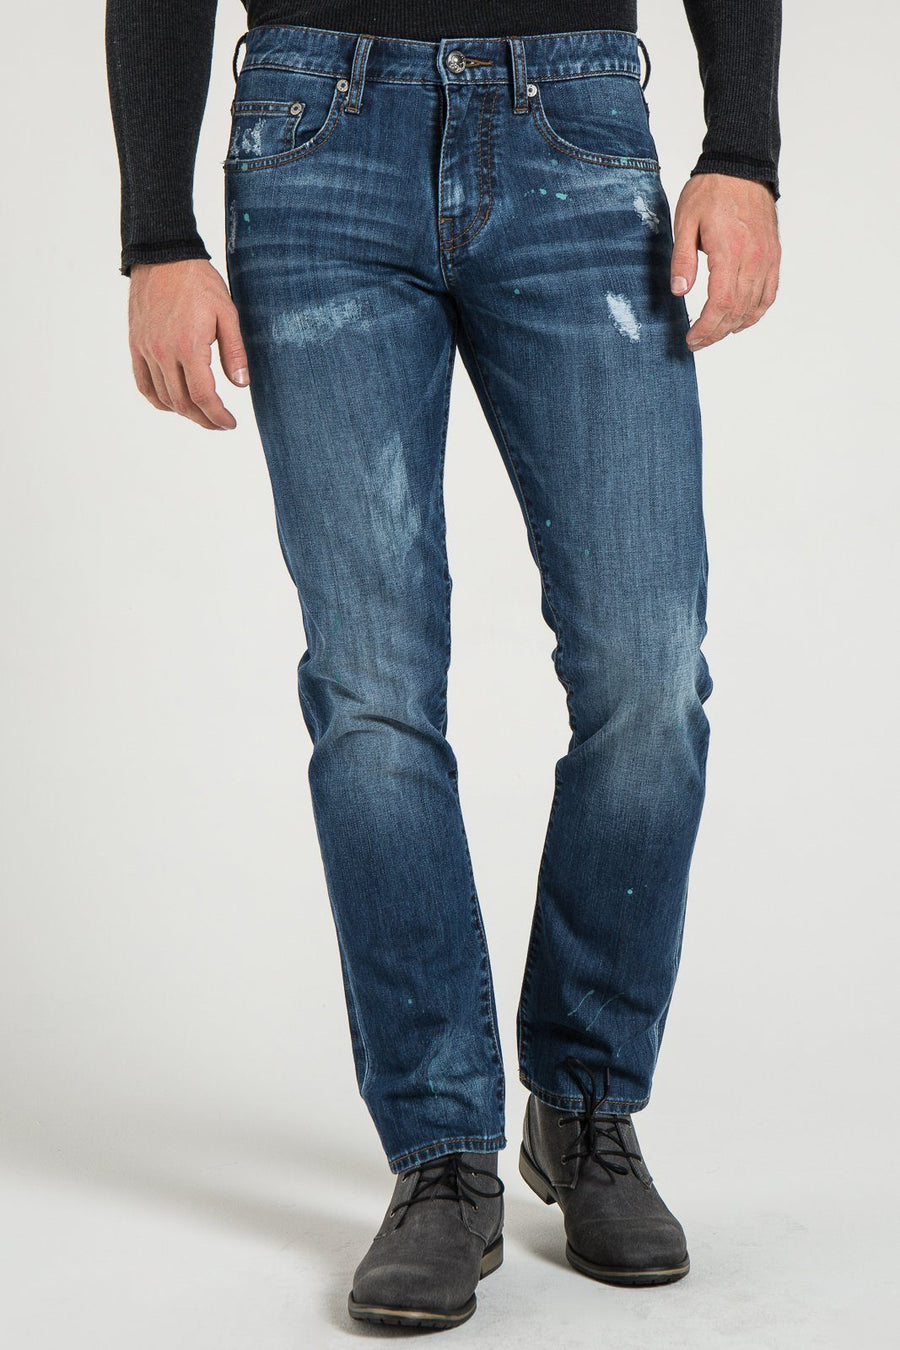 BARFLY SLIM IN DILLON DISTRESSED DENIM